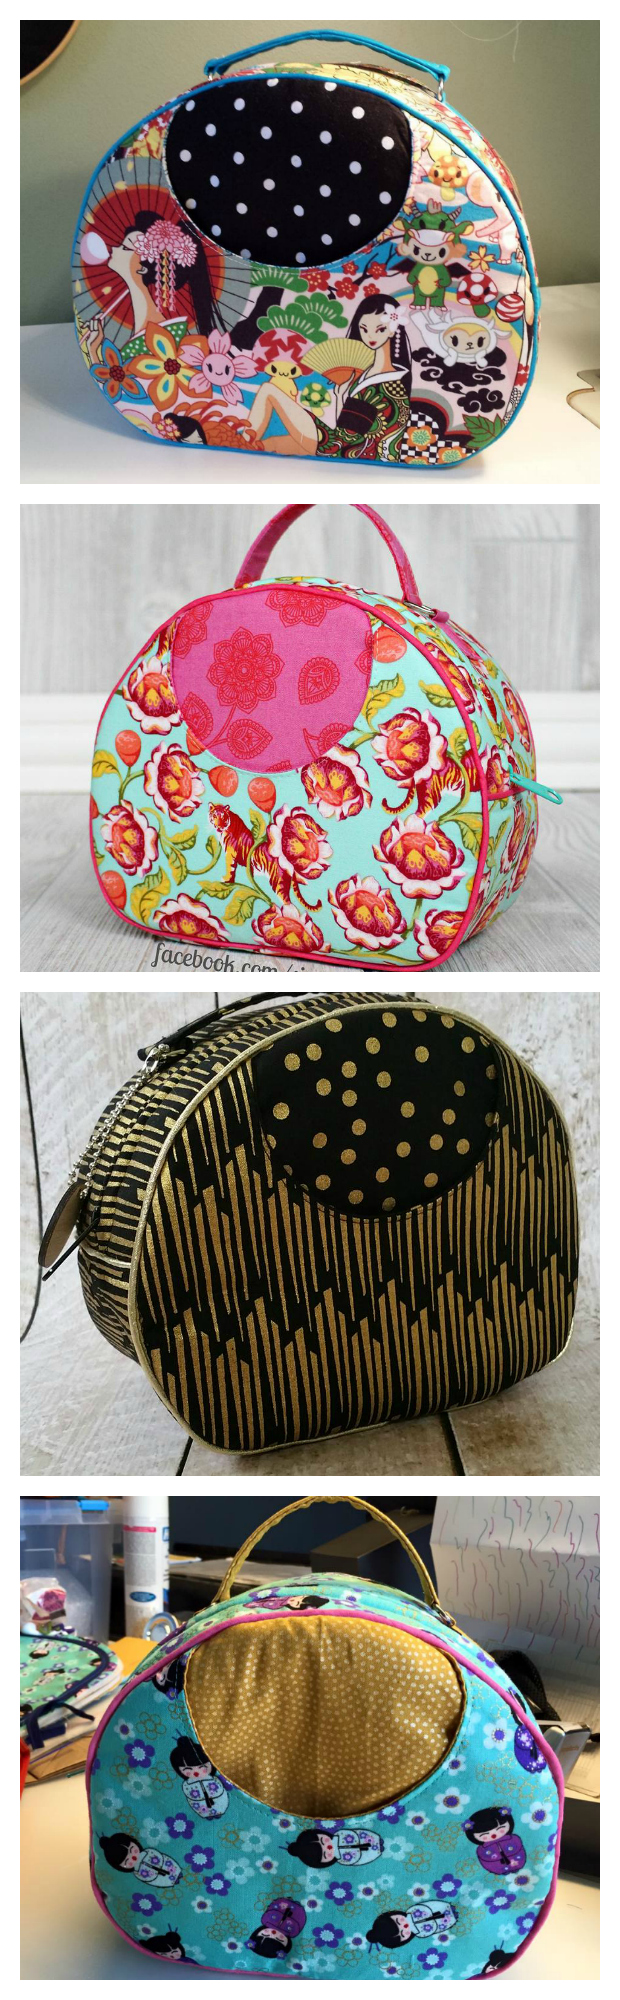 If you want to make the Olive Vanity Bag by Swoon then you can watch the full tutorial here. And if you want to modify the bag so that it opens out flat there is a tutorial for that here too. This spacious vanity bag is the perfect travel companion. It features an exterior slip pocket and convenient carrying handle. There are two sizes included in the pattern.